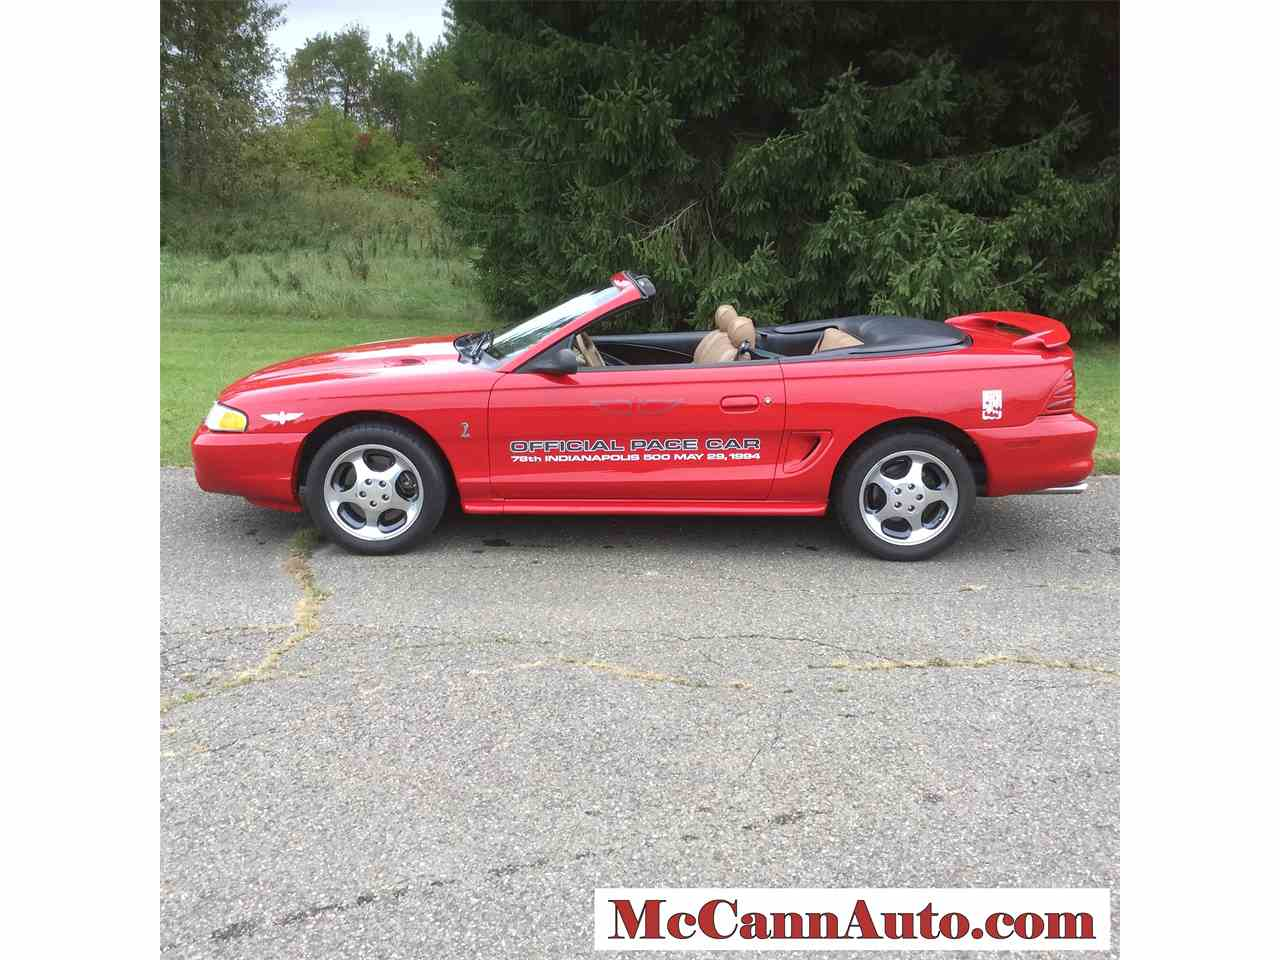 Large Picture of 1994 Mustang Cobra located in Houlton Maine Offered by a Private Seller - JQAW